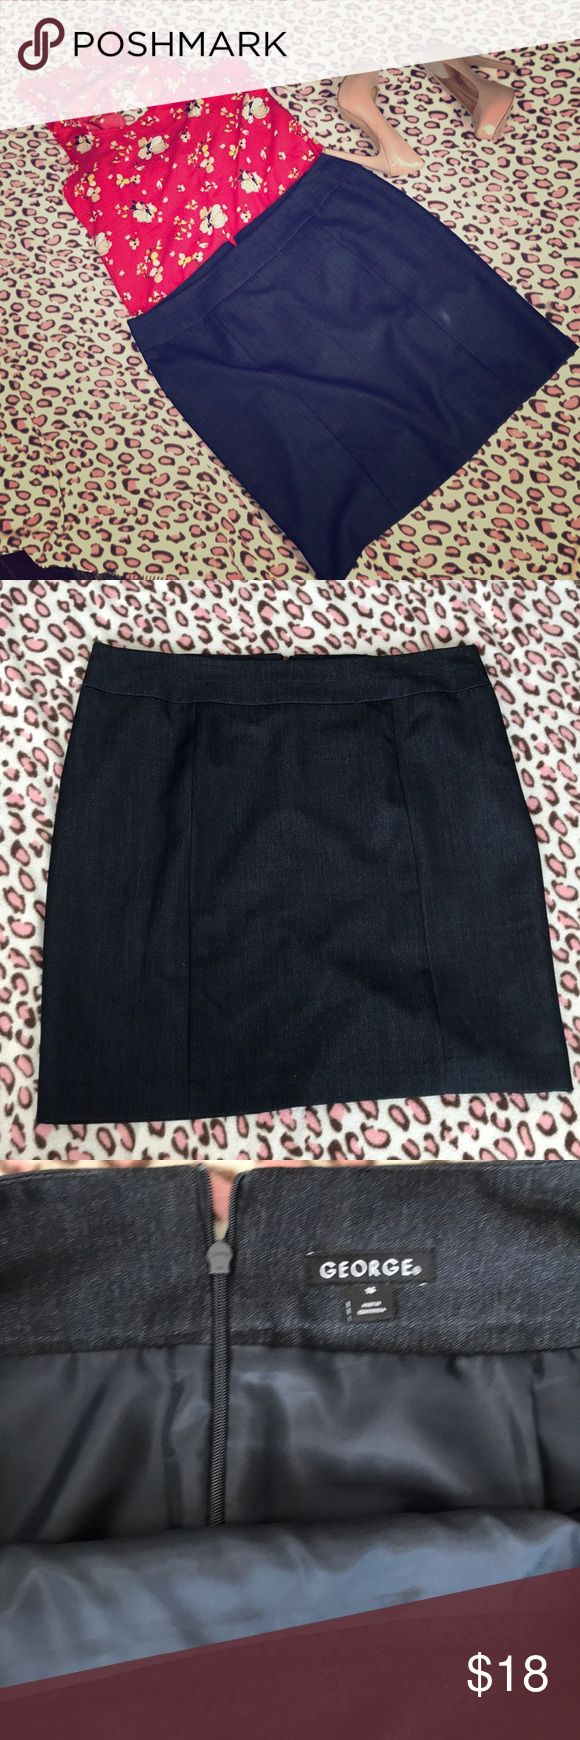 GEORGE navy blue pencil skirt sz16 Women's size 16 navy blue skirt, knee length, In new condition only worn once. George Skirts Pencil